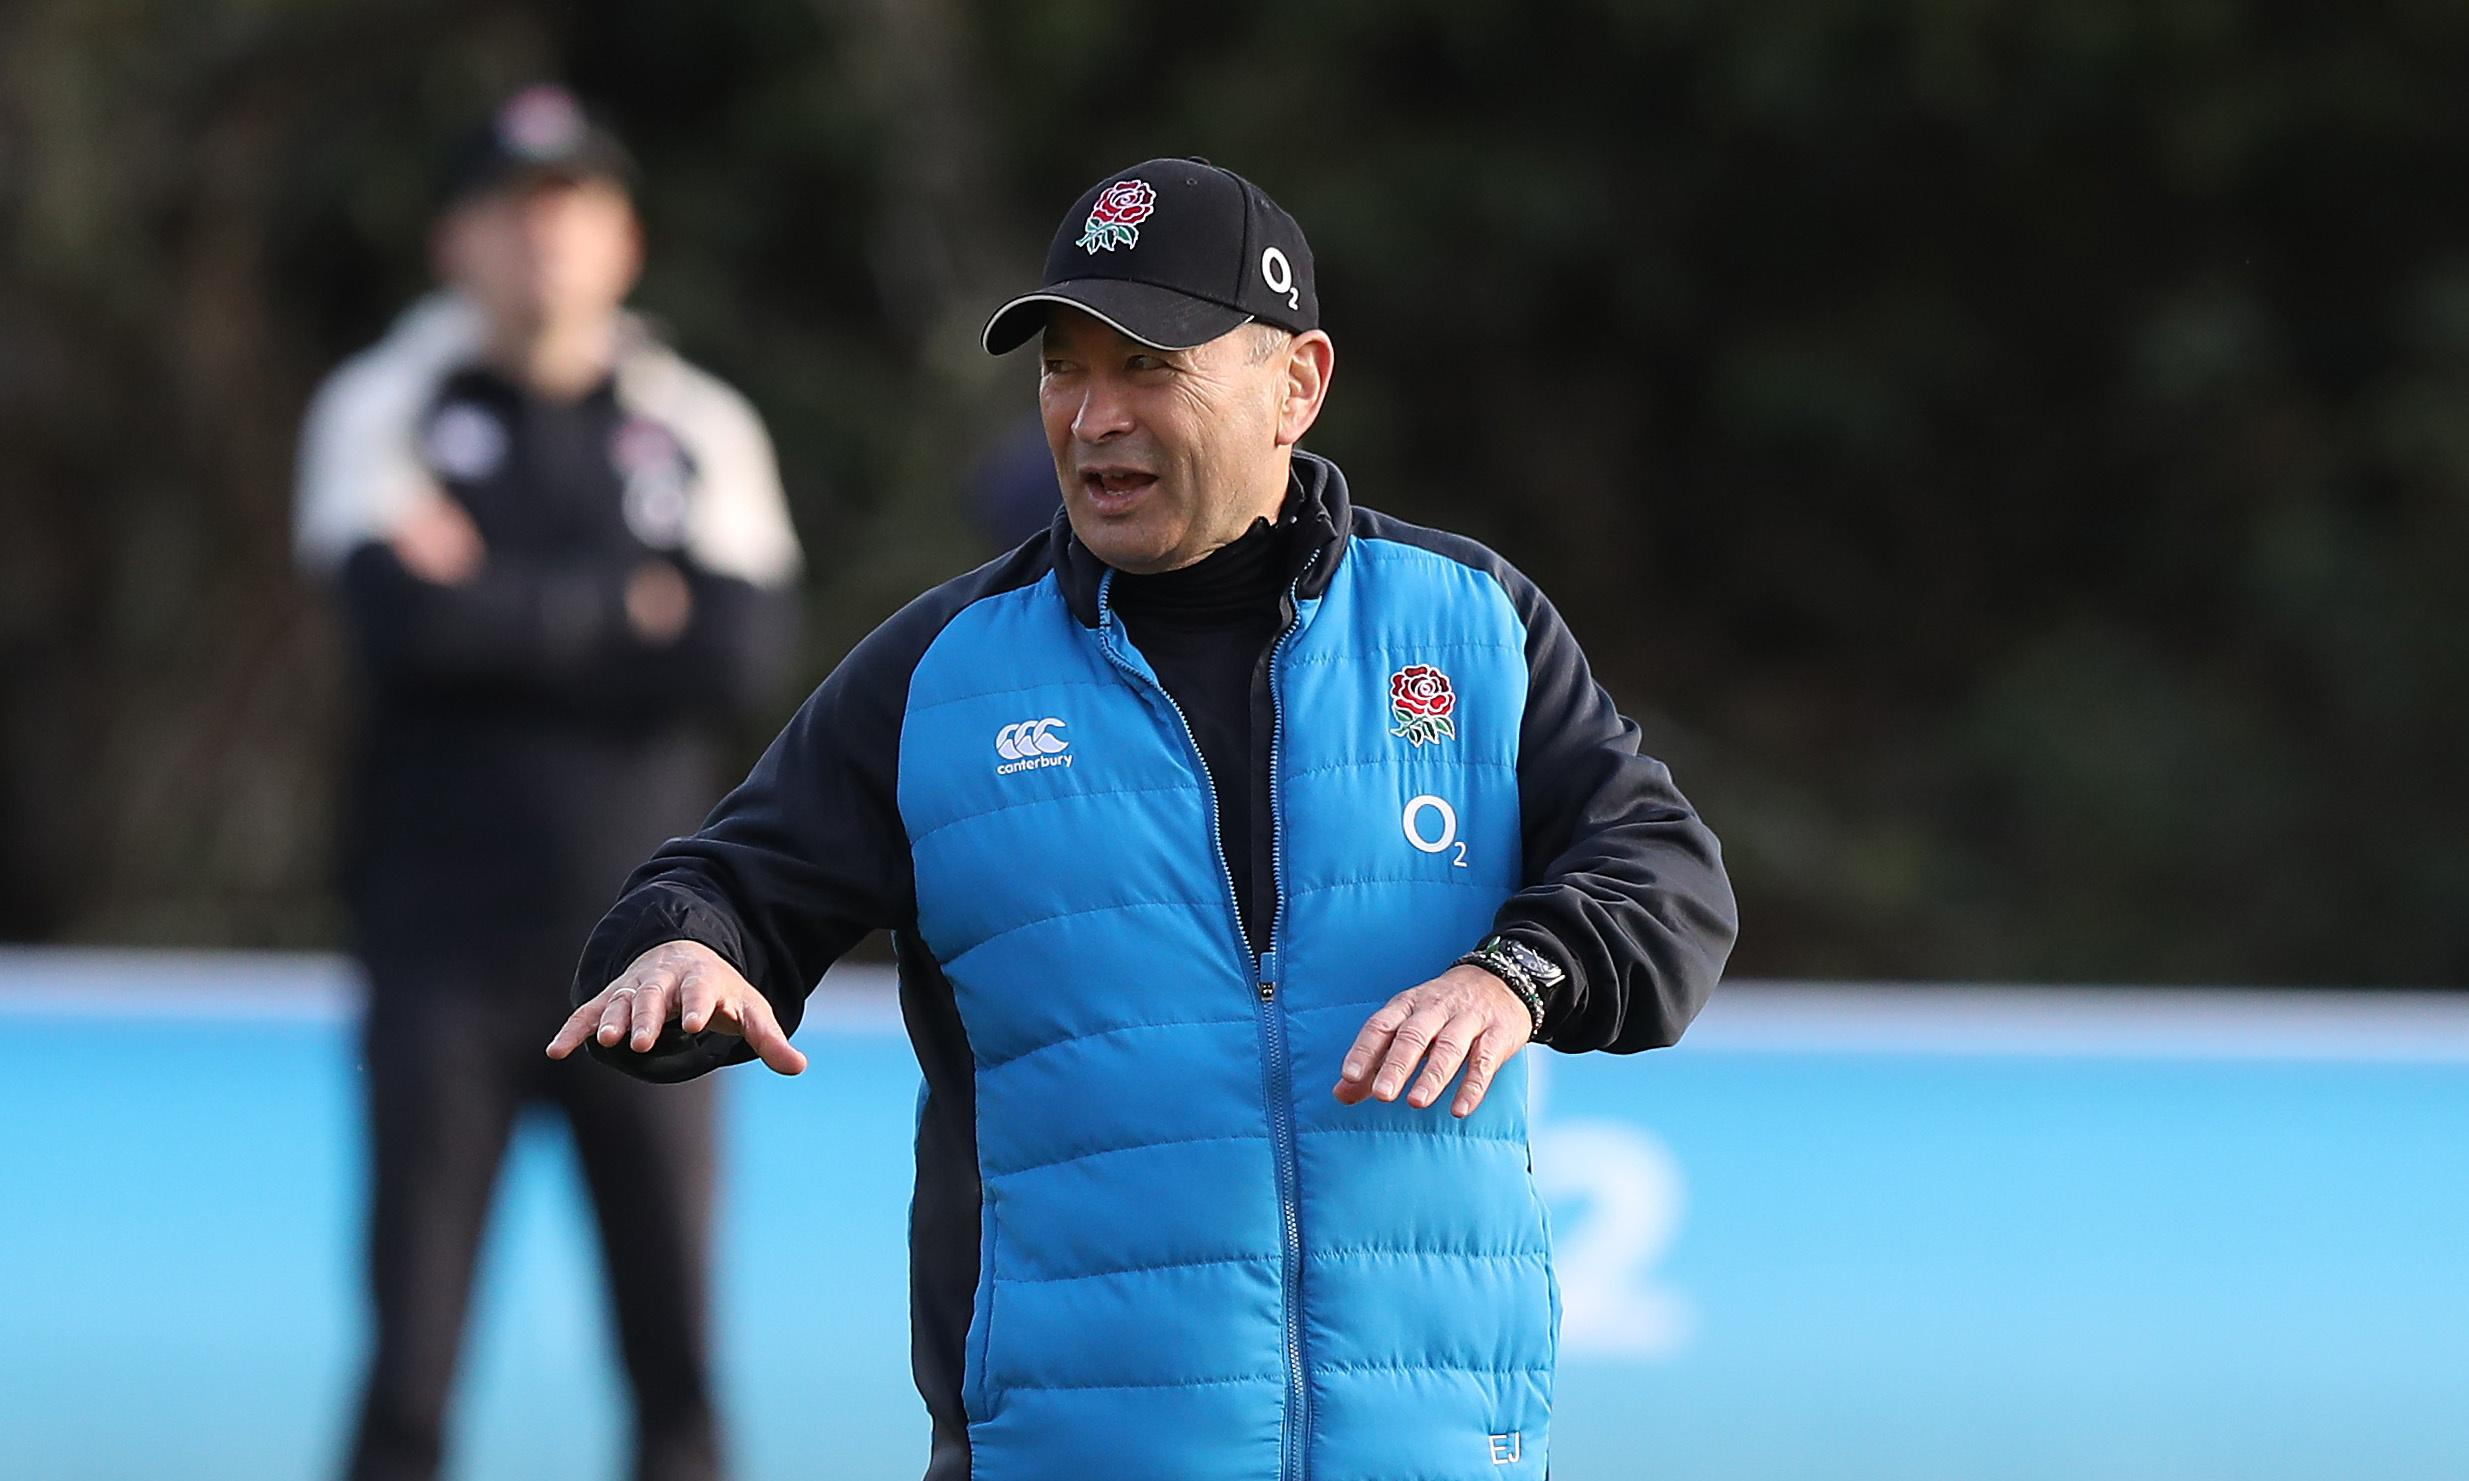 England's Eddie Jones seeking display of 'real steel' against Wales